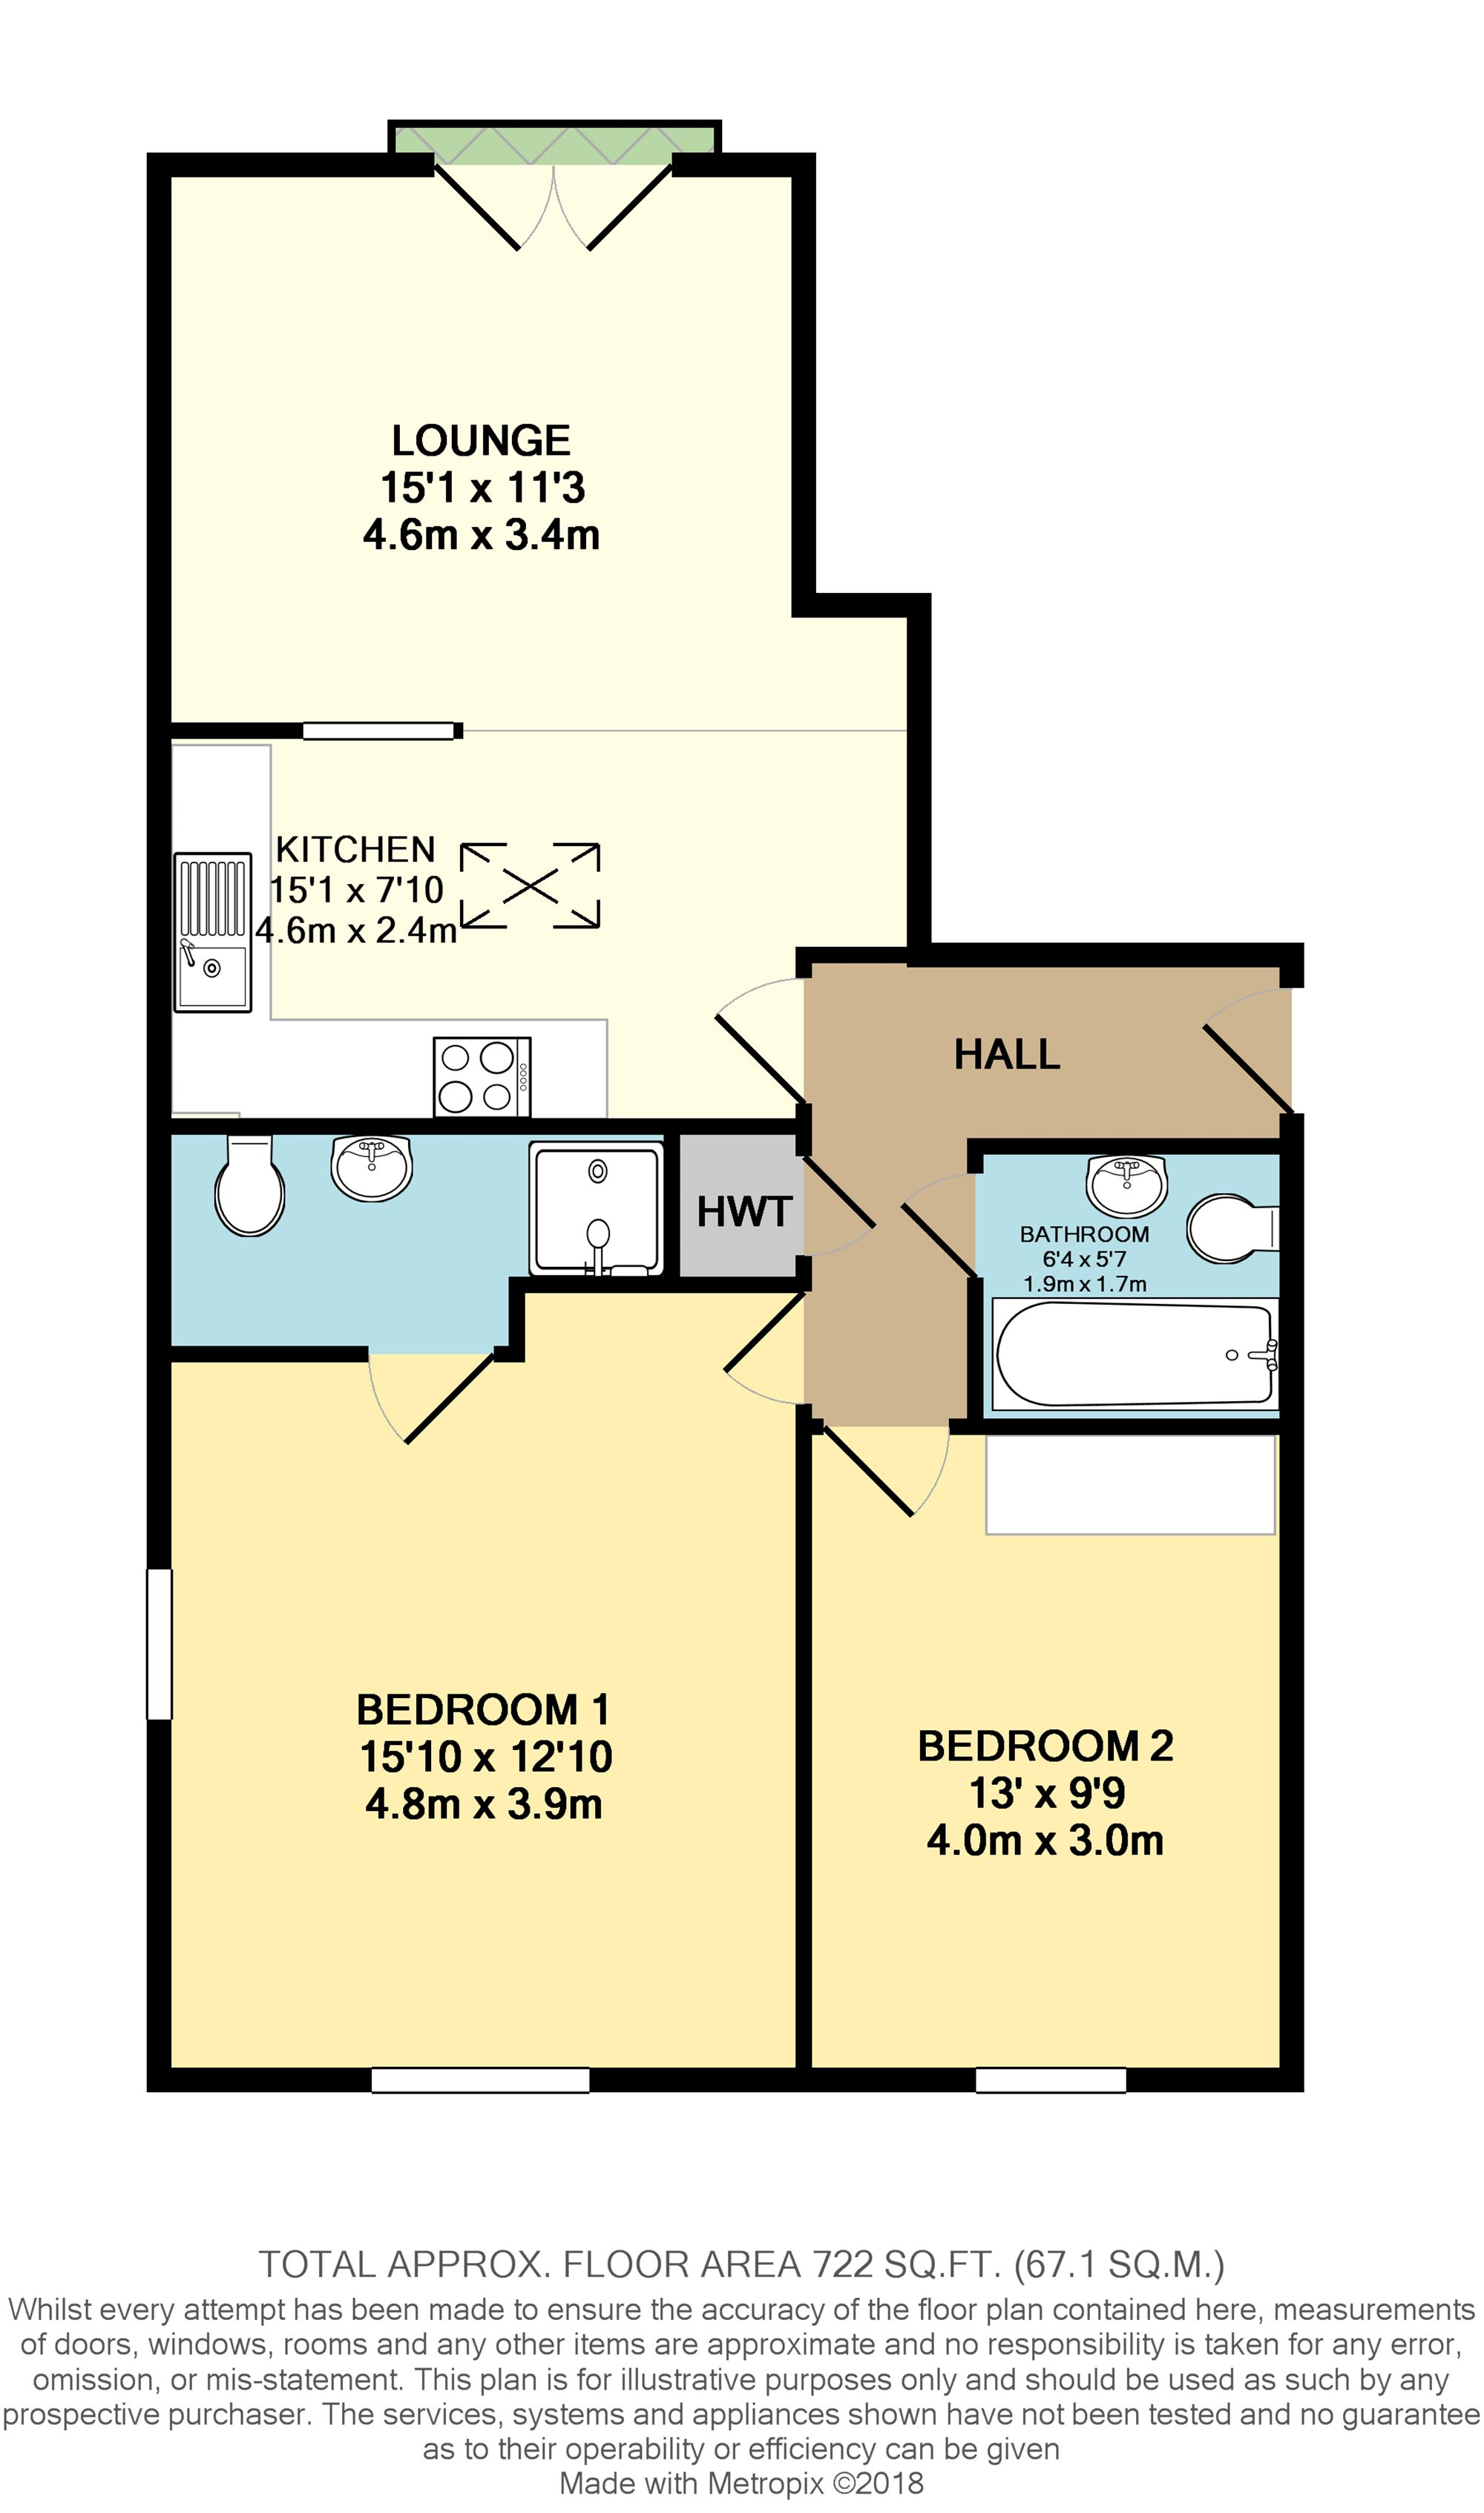 Floorplan of property at Dorset Road South